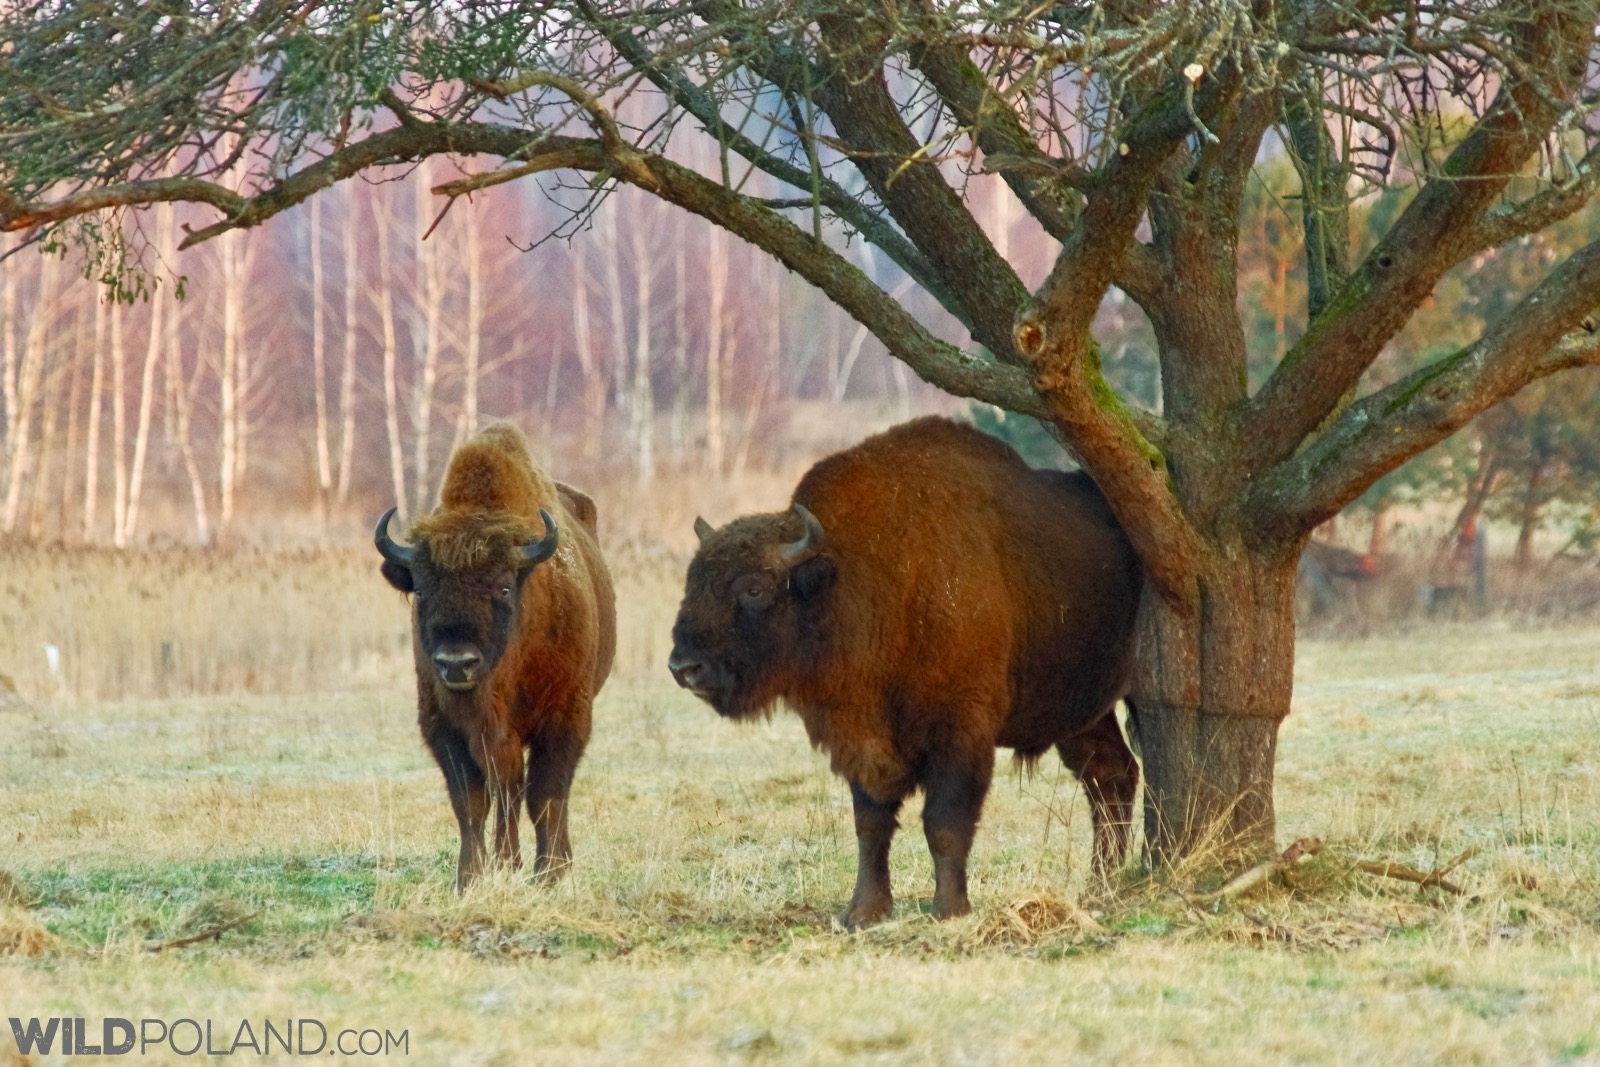 Bison bulls at the sunny meadow in Białowieża, photo by Andrzej Petryna